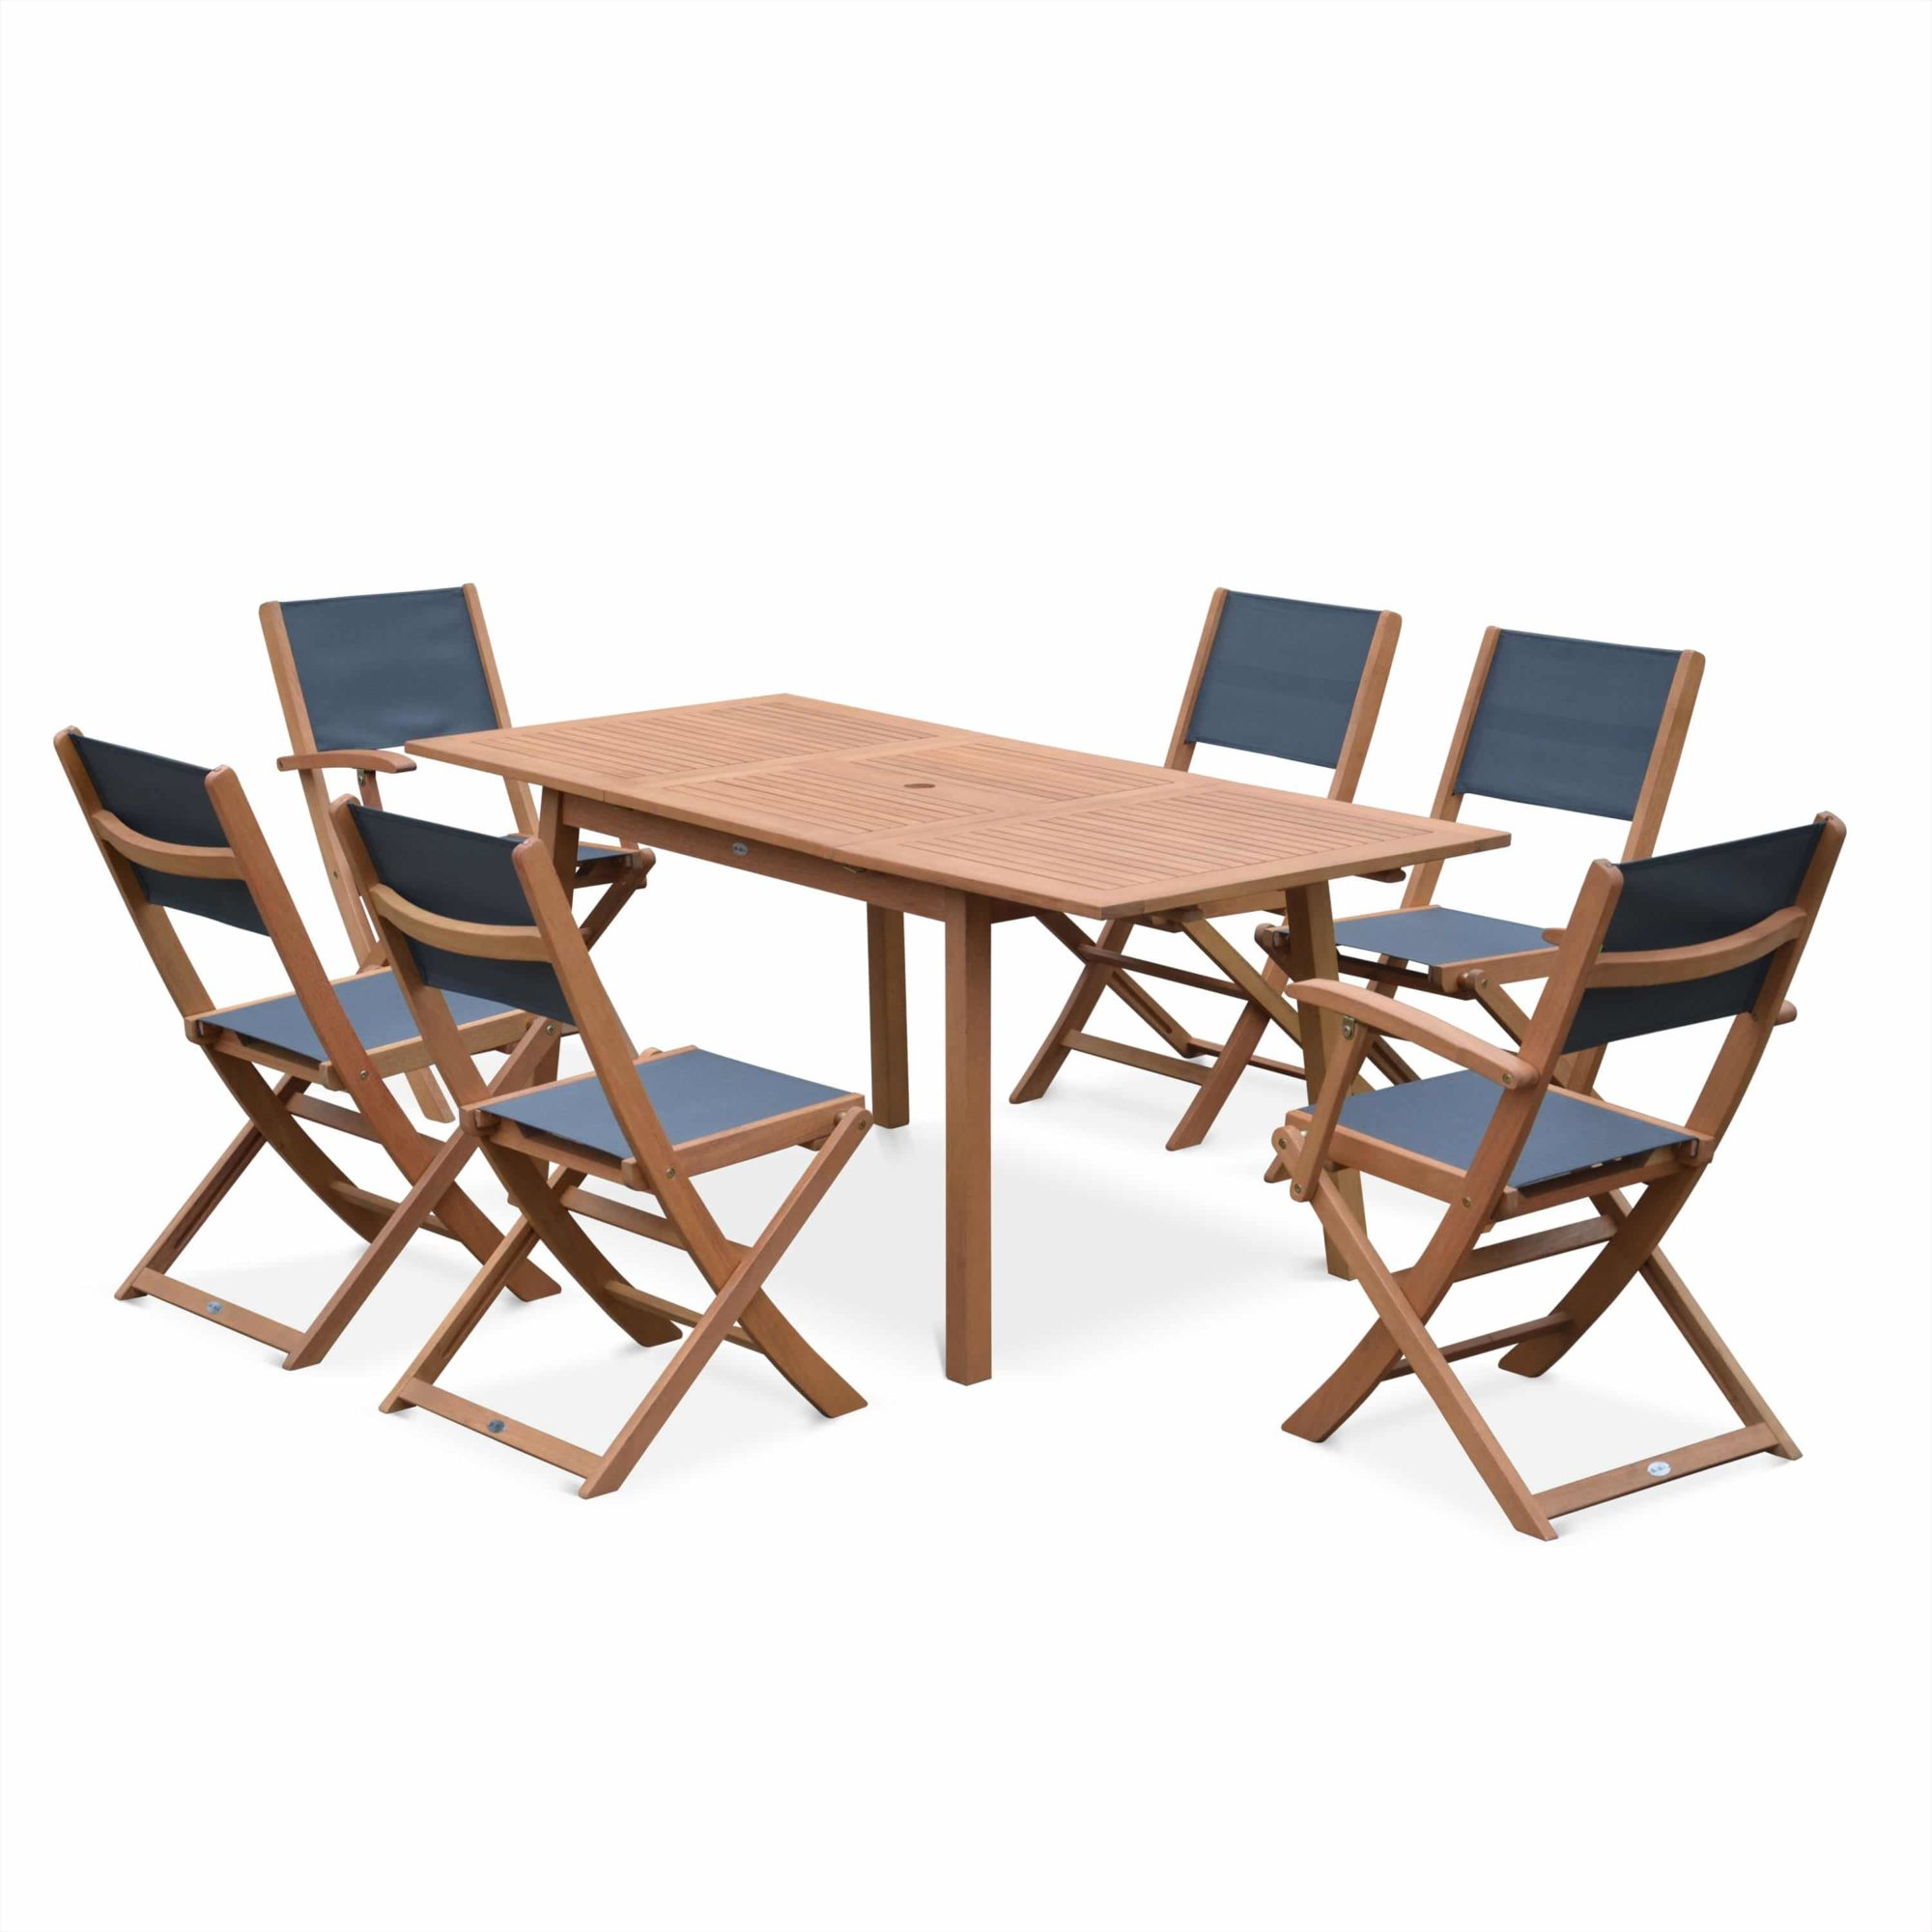 Almeria Dining Table 180cm with chairs and Armchairs Grey